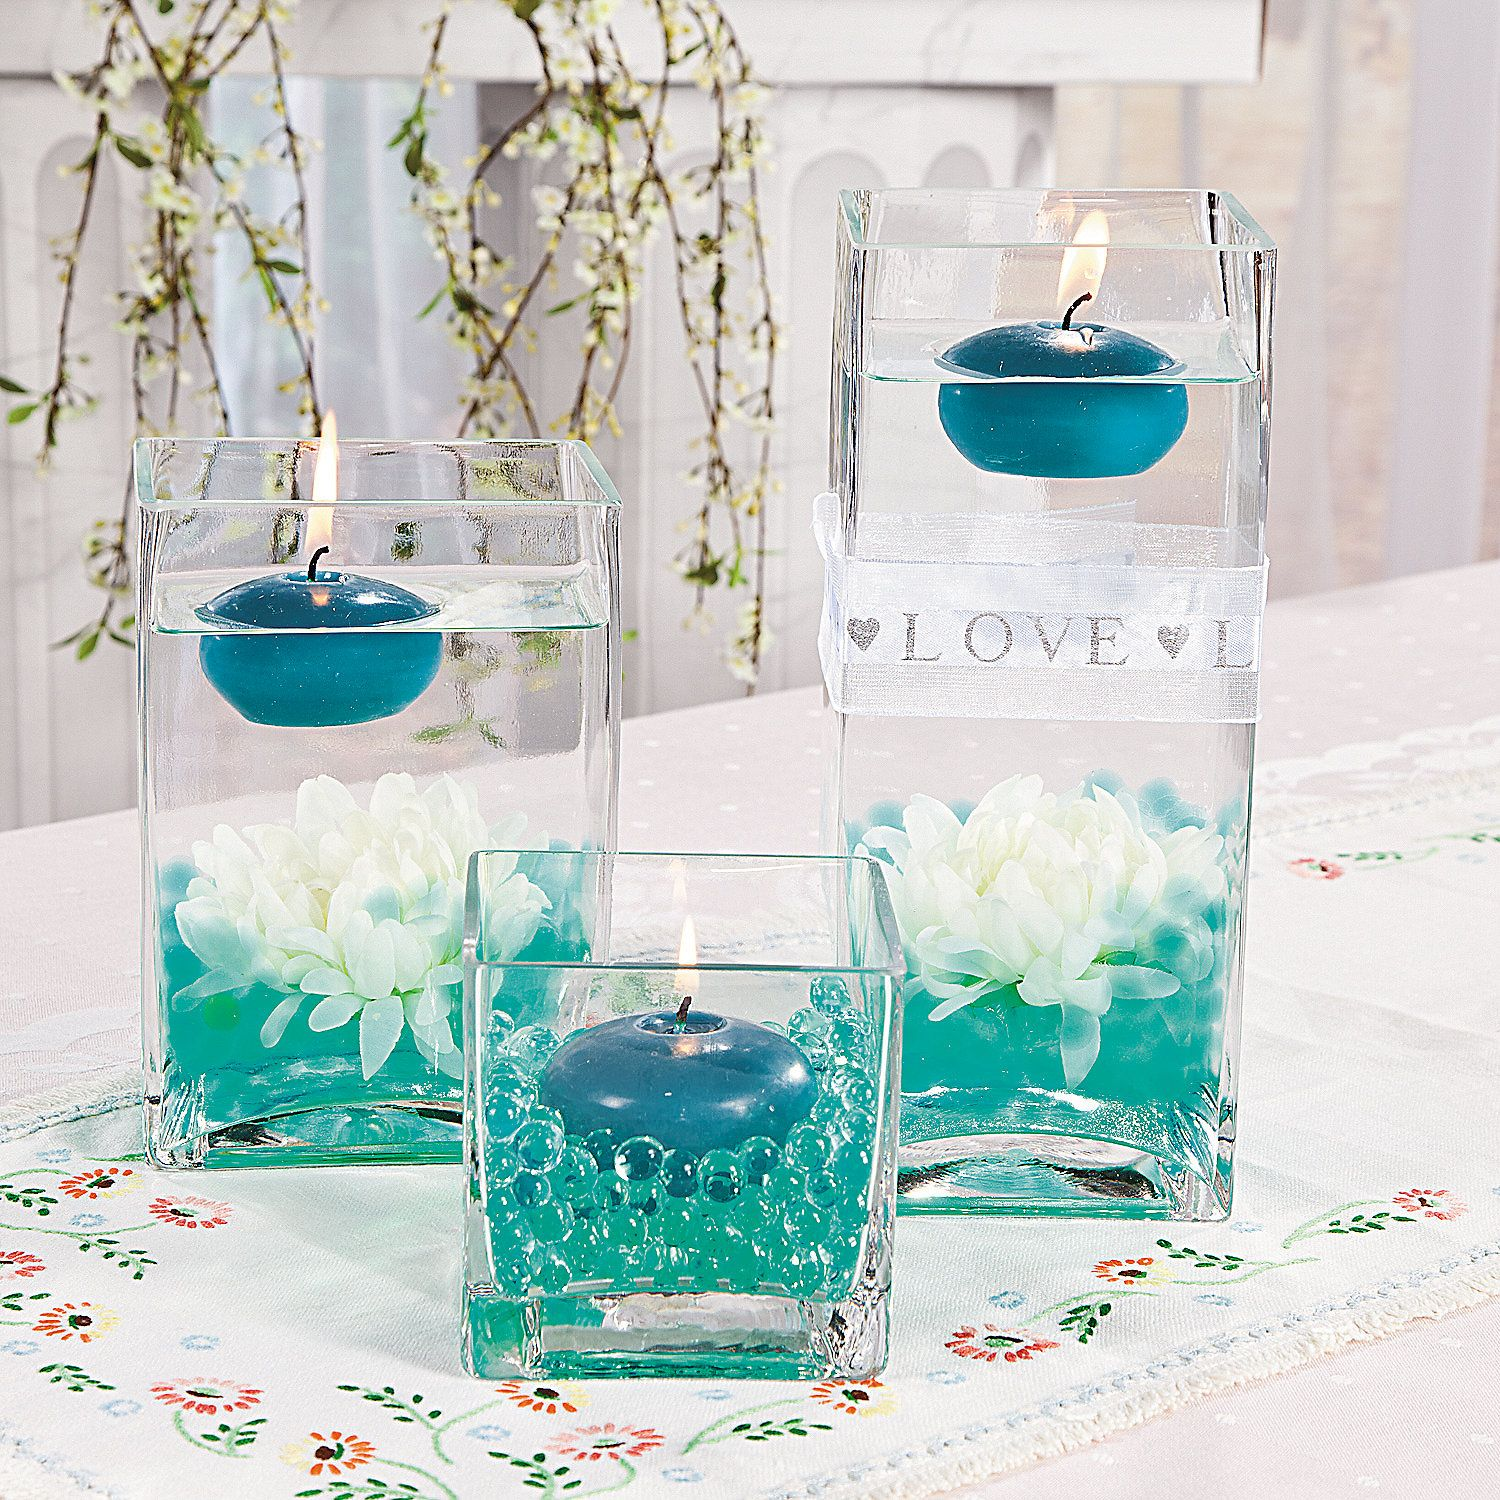 Floating Candle Centerpieces Idea - OrientalTrading.com - THIS, BUT ...